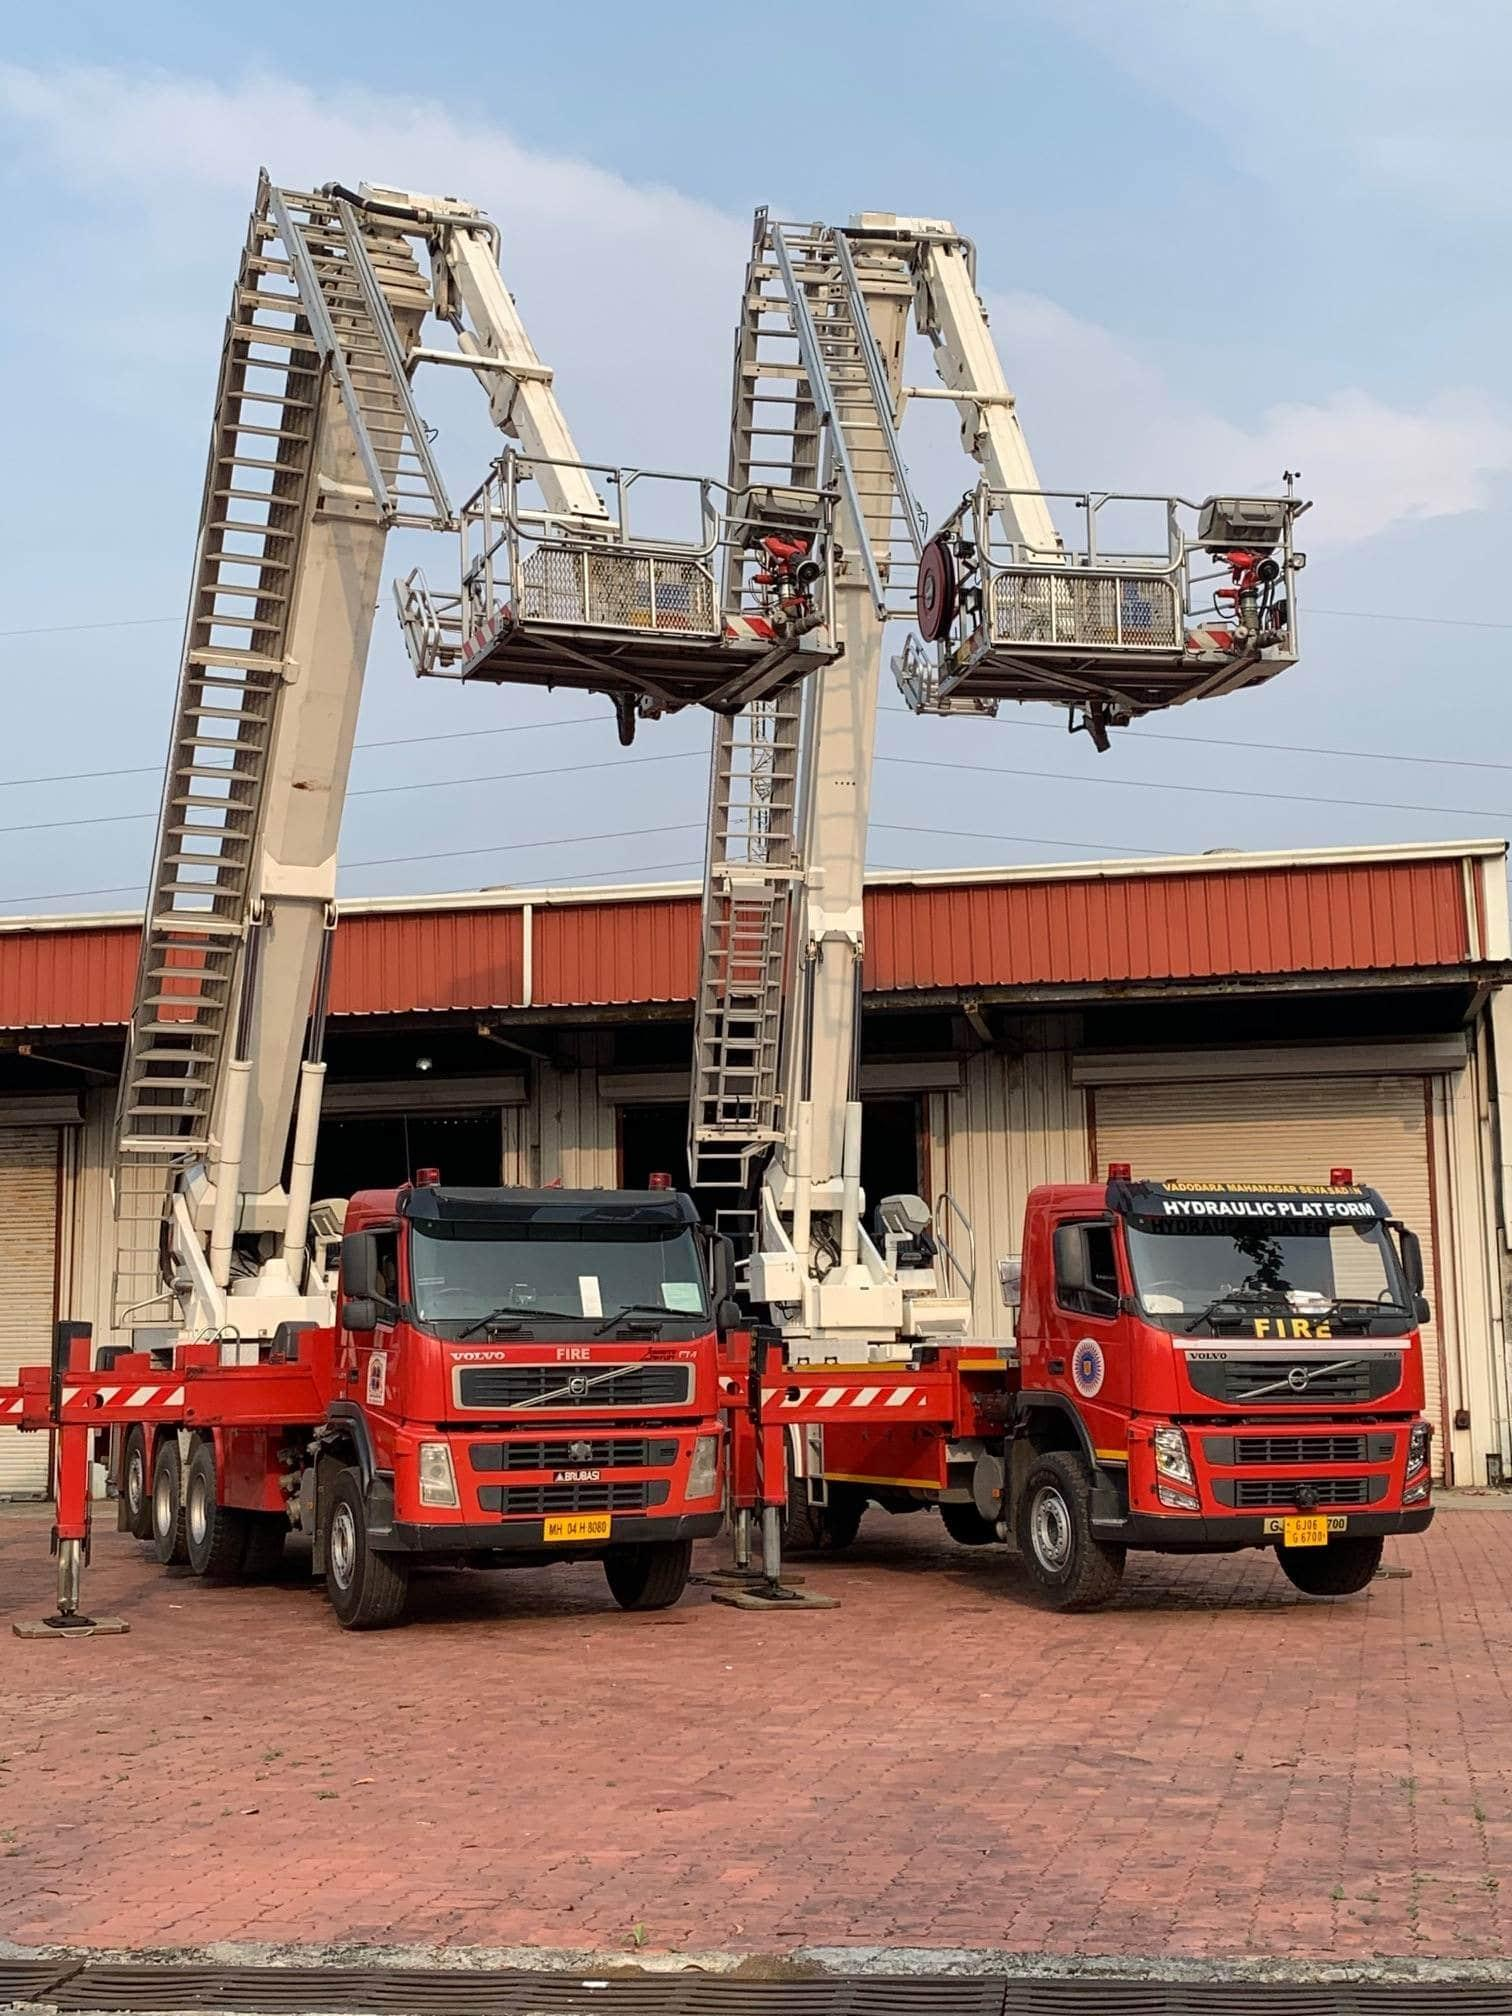 Bronto aerial ladder platforms in maintenance in India